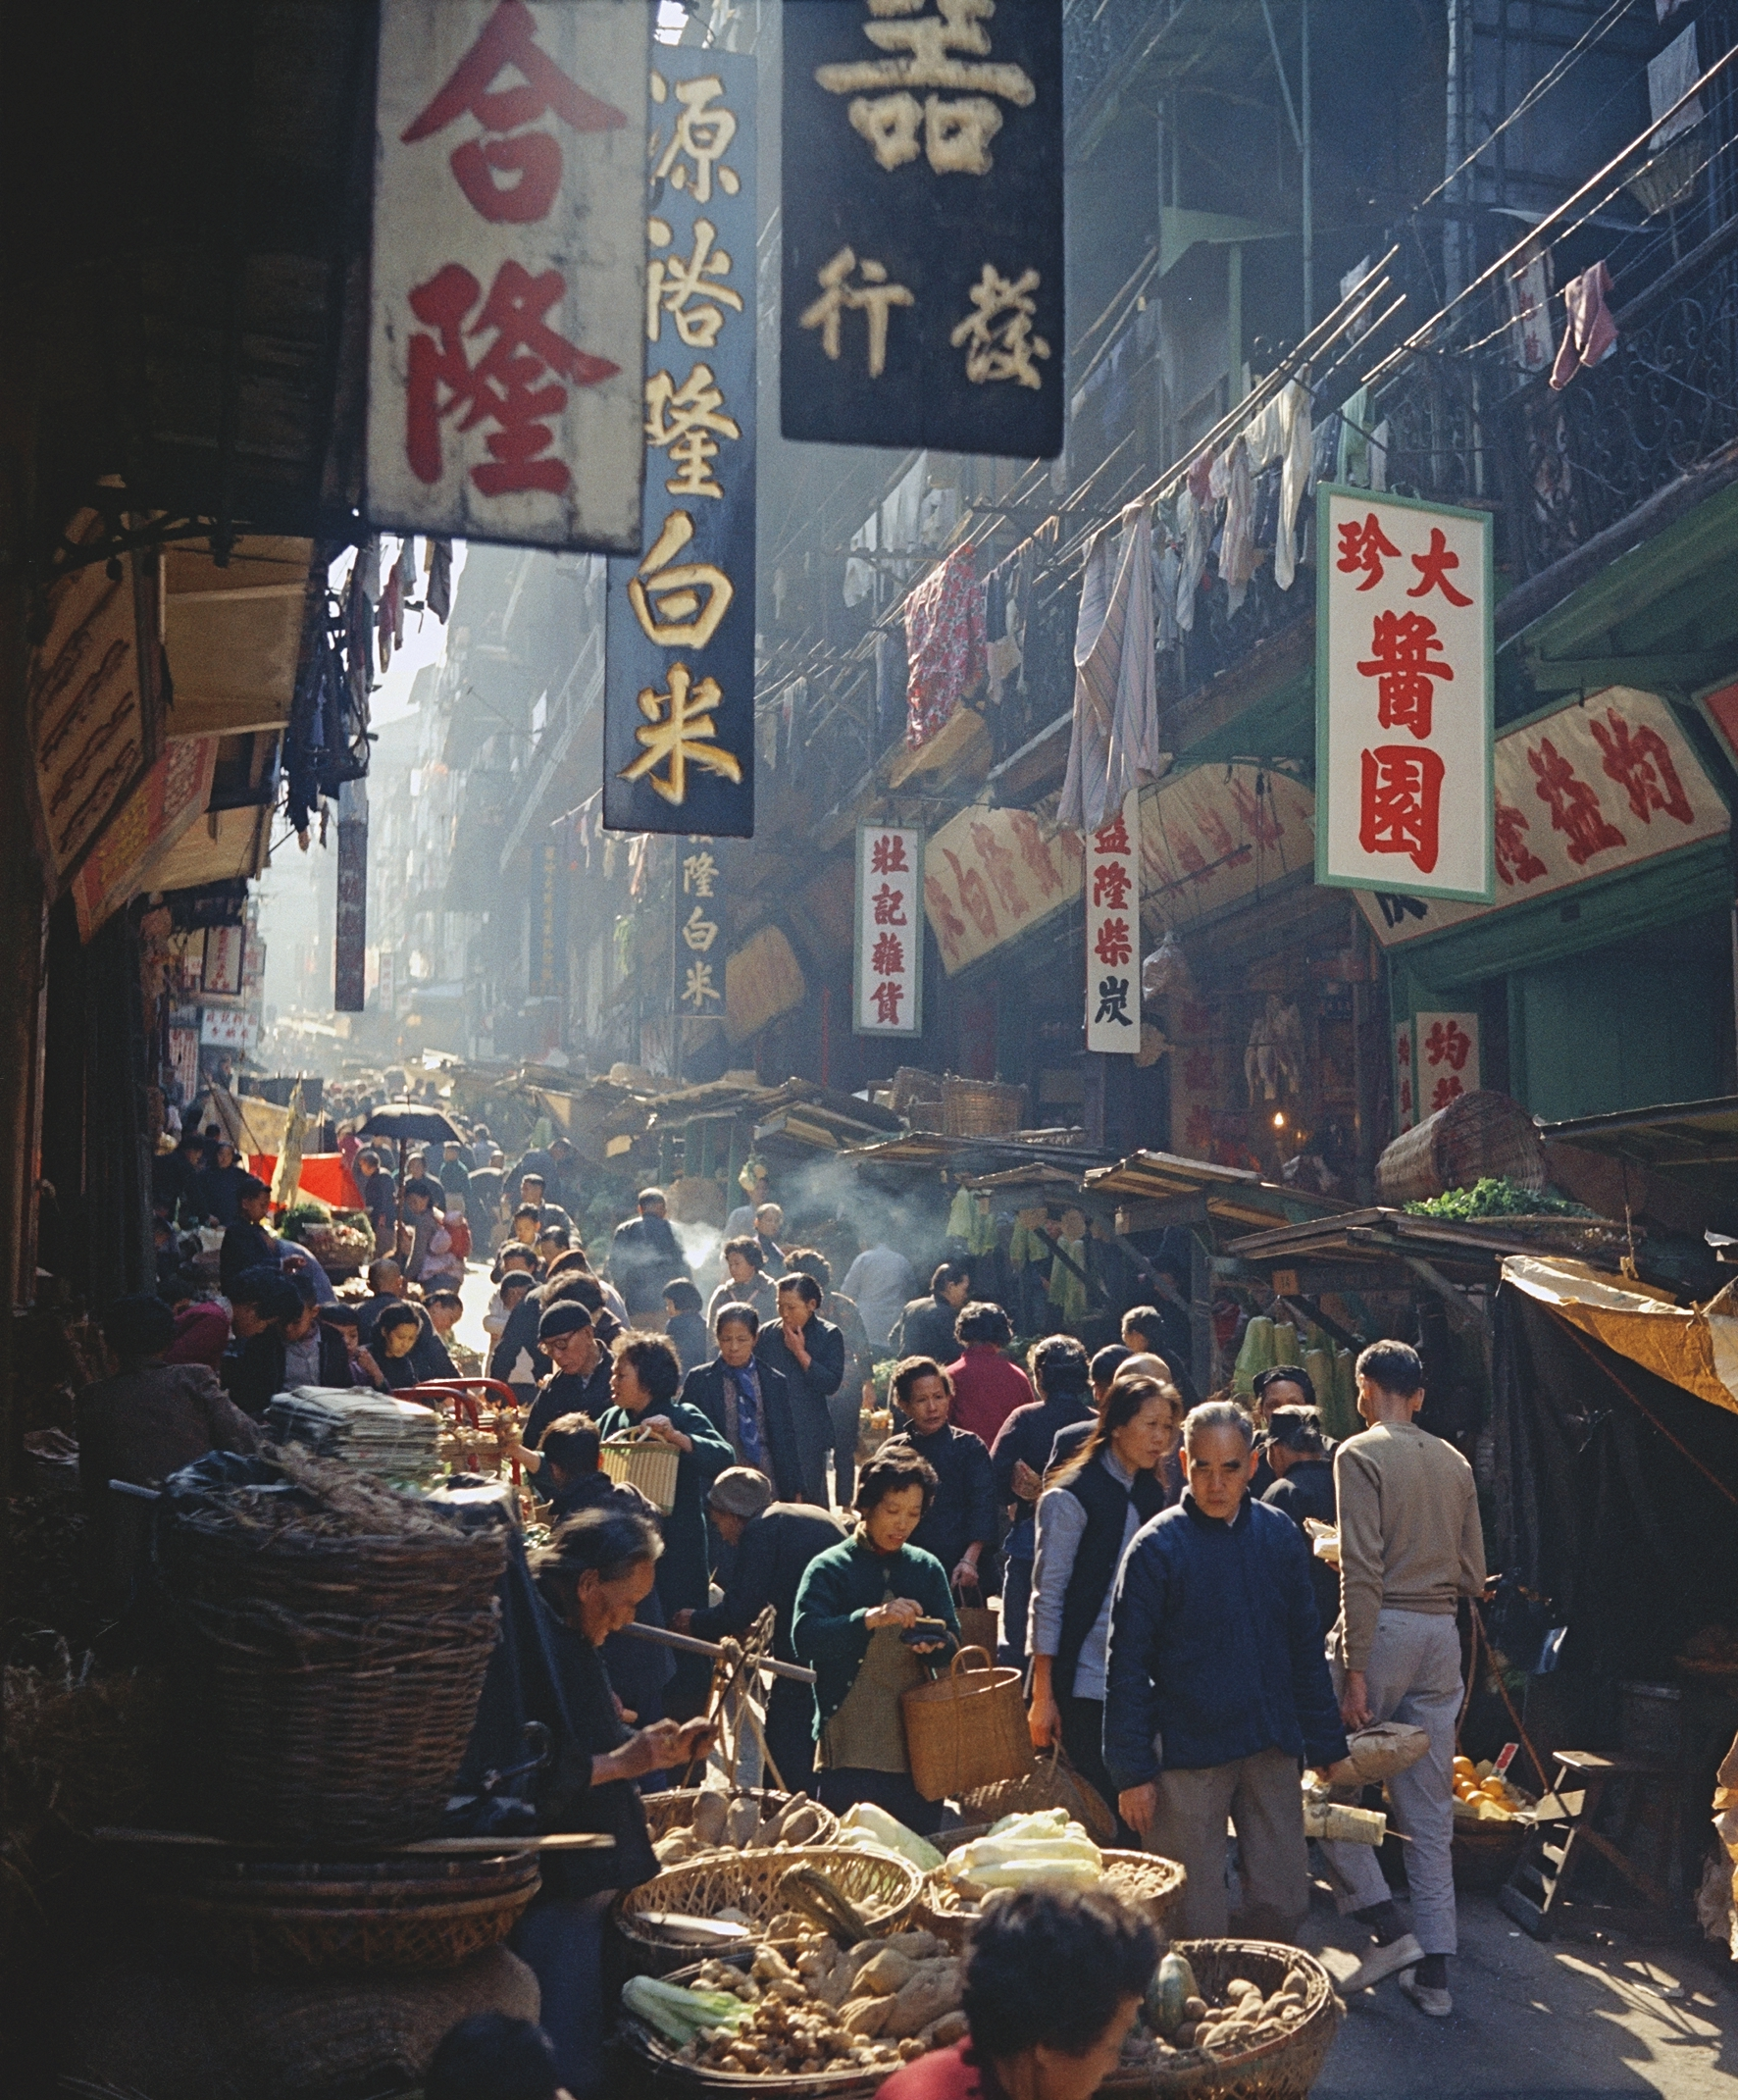 Fan Ho 'Market Promenade(開門七件事)' Hong Kong 1950s and 60s, courtesy of Blue Lotus Gallery